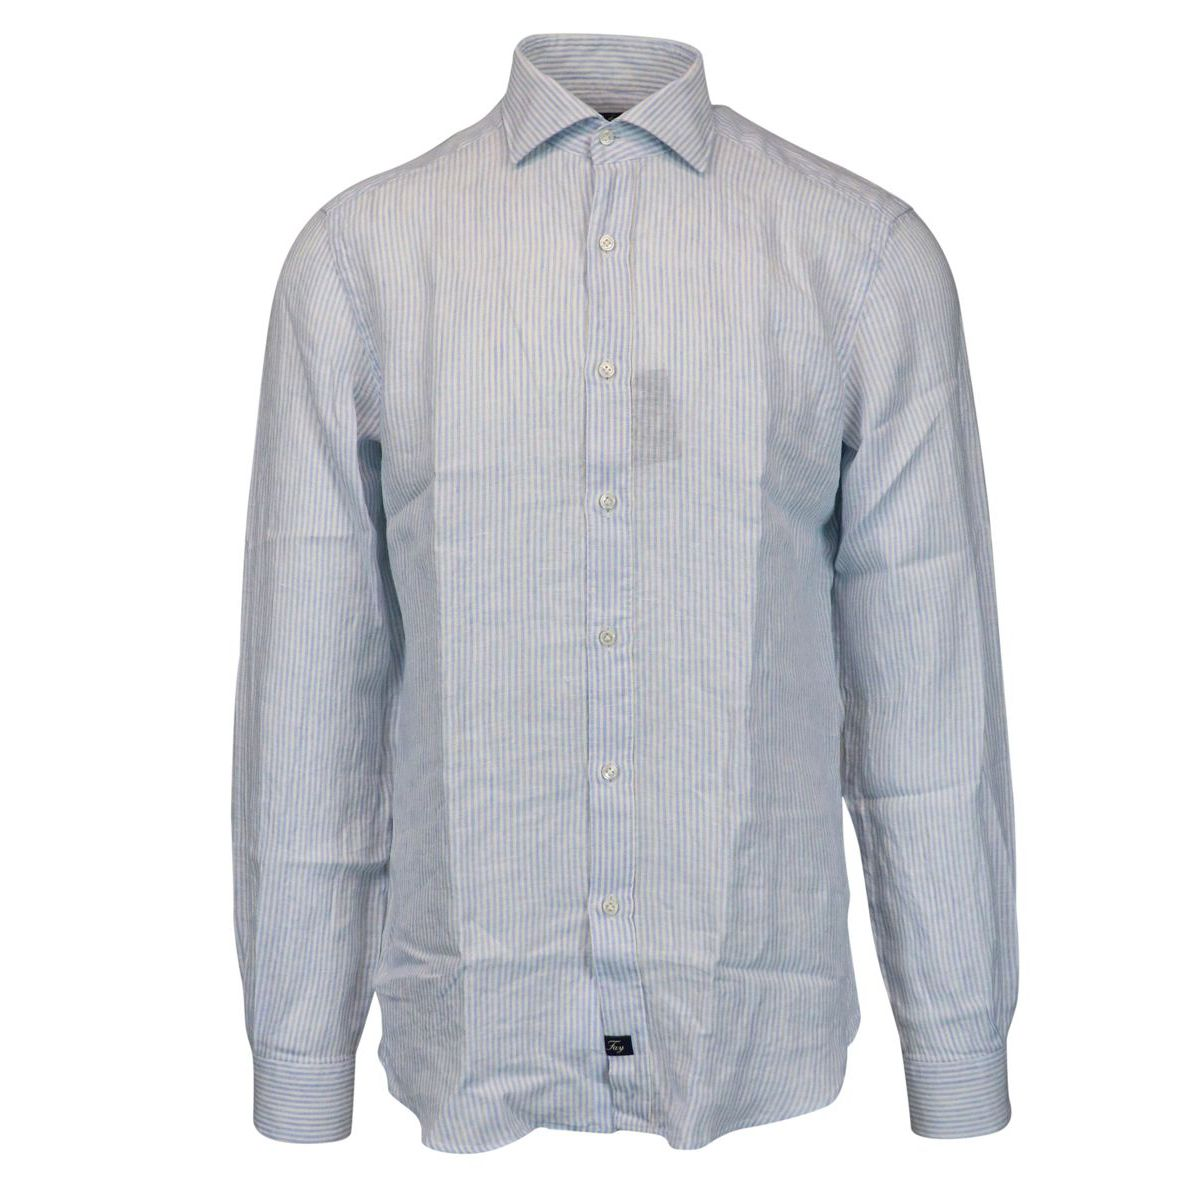 Slim-fit striped linen shirt with French collar White / light blue Fay